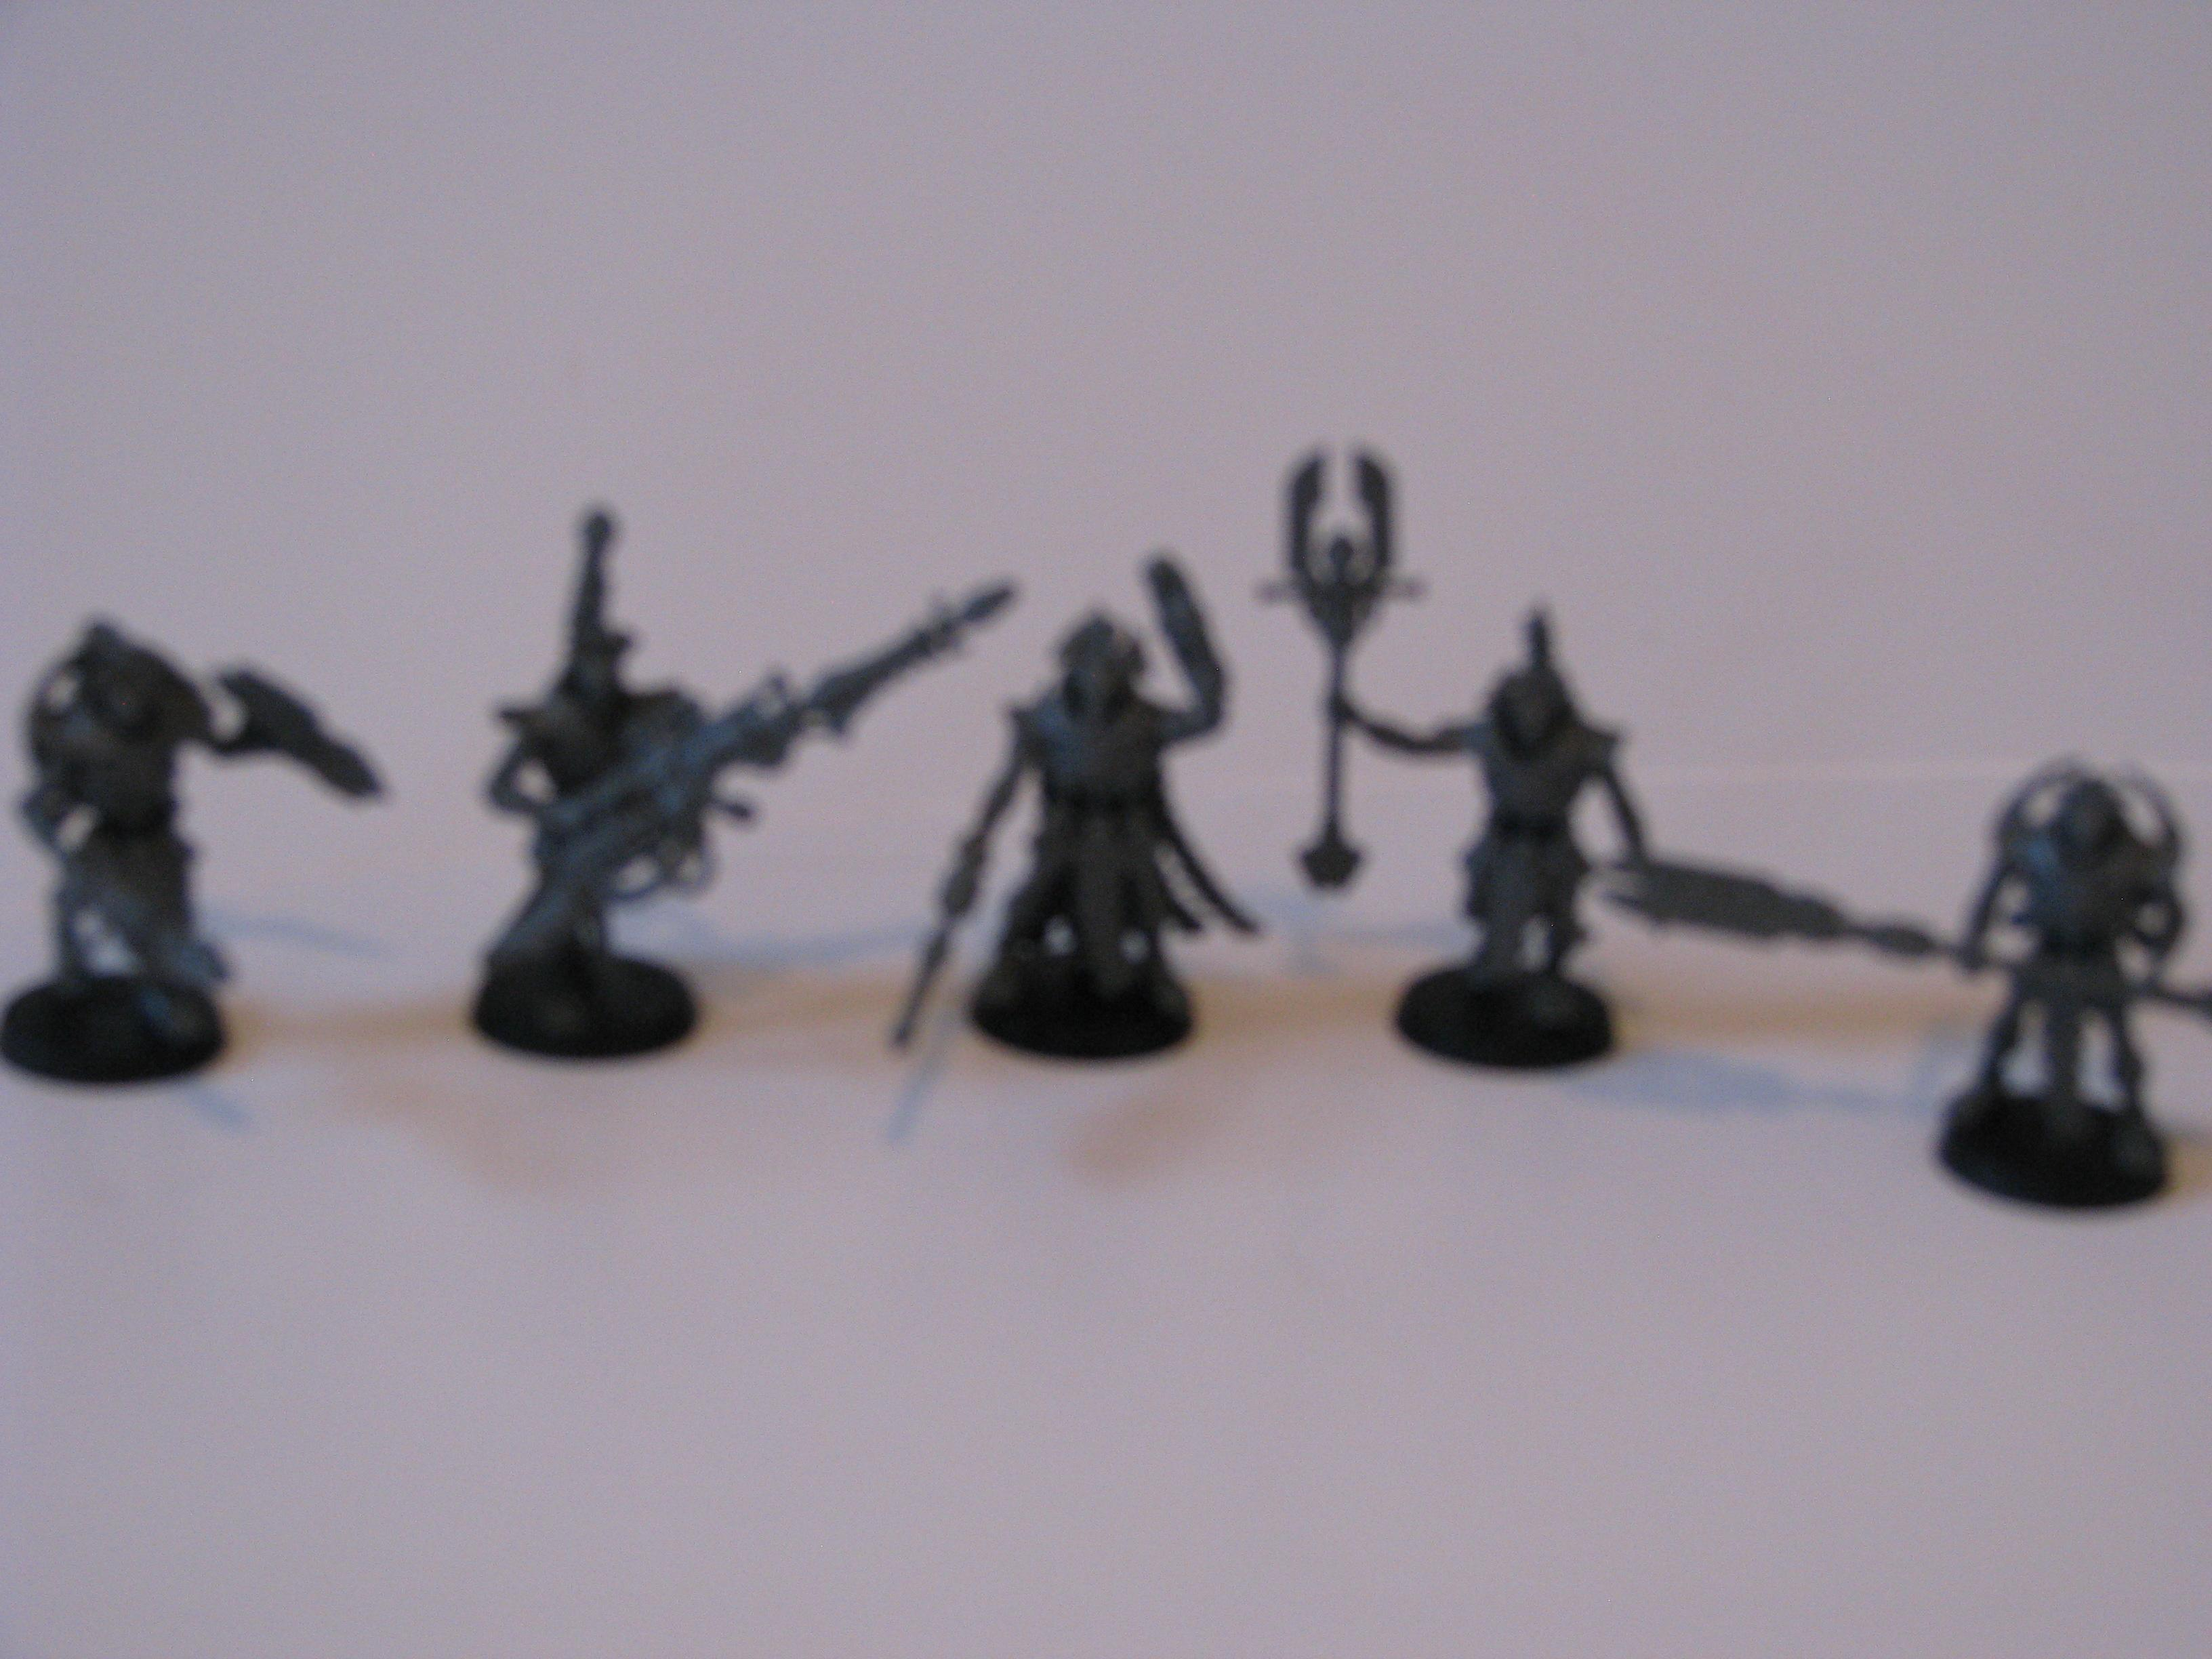 Blurred Photo, Necrons